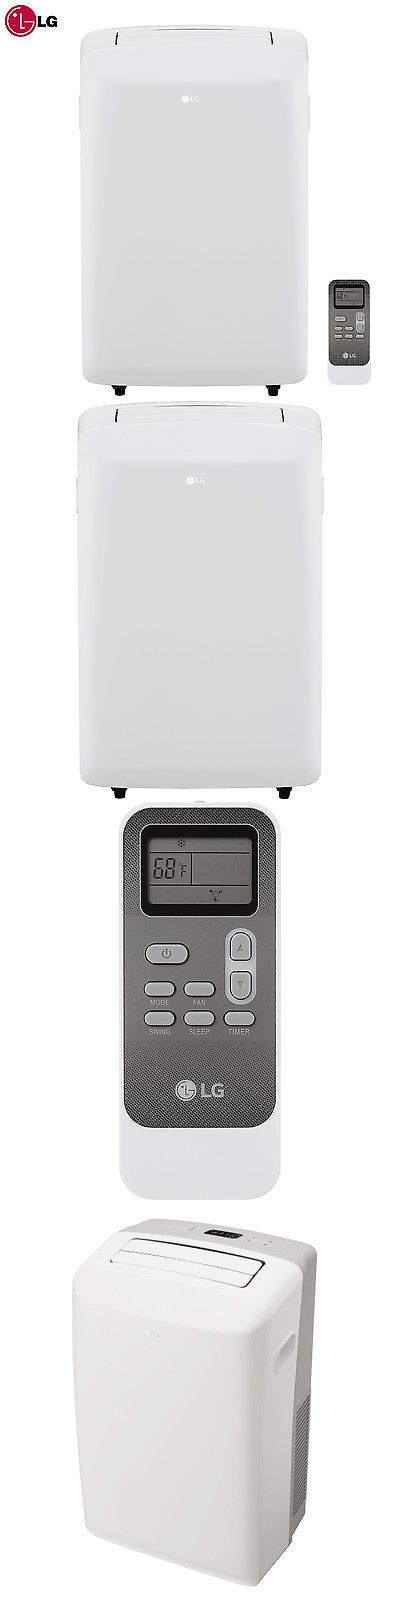 Air Conditioners 69202: Lg 8000-Btu 115V Portable Air Conditioner With Remote Control, White - Lp0817wsr -> BUY IT NOW ONLY: $260.85 on eBay!